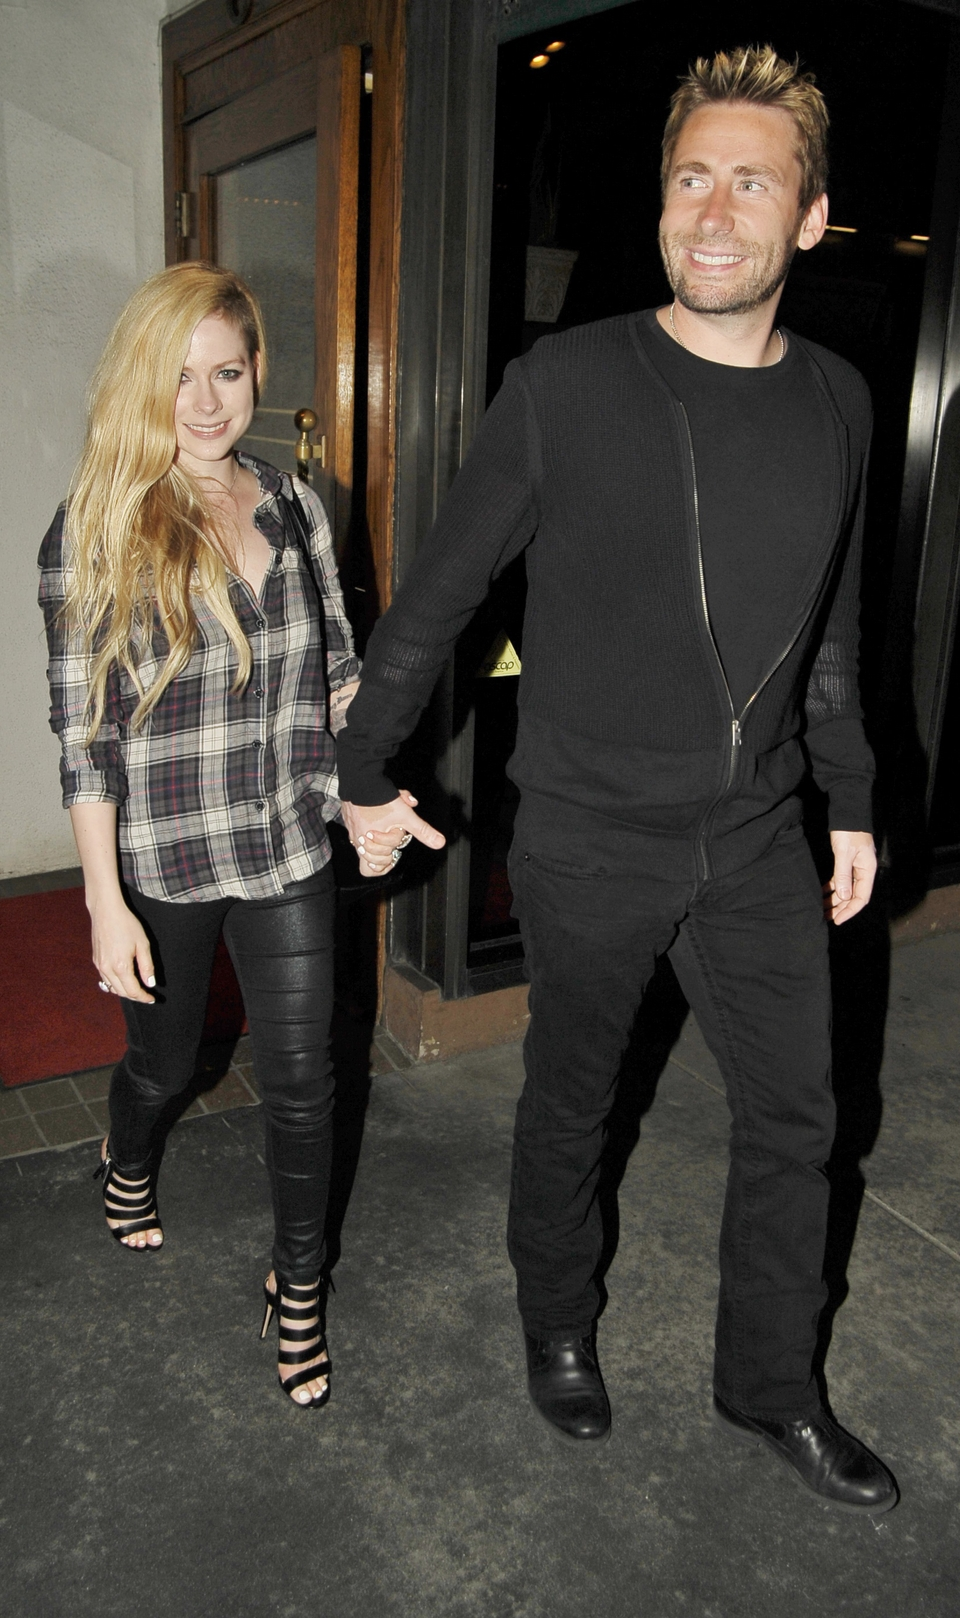 EXCLUSIVE: Avril Lavigne and Chad Kroeger at Madeo for dinner